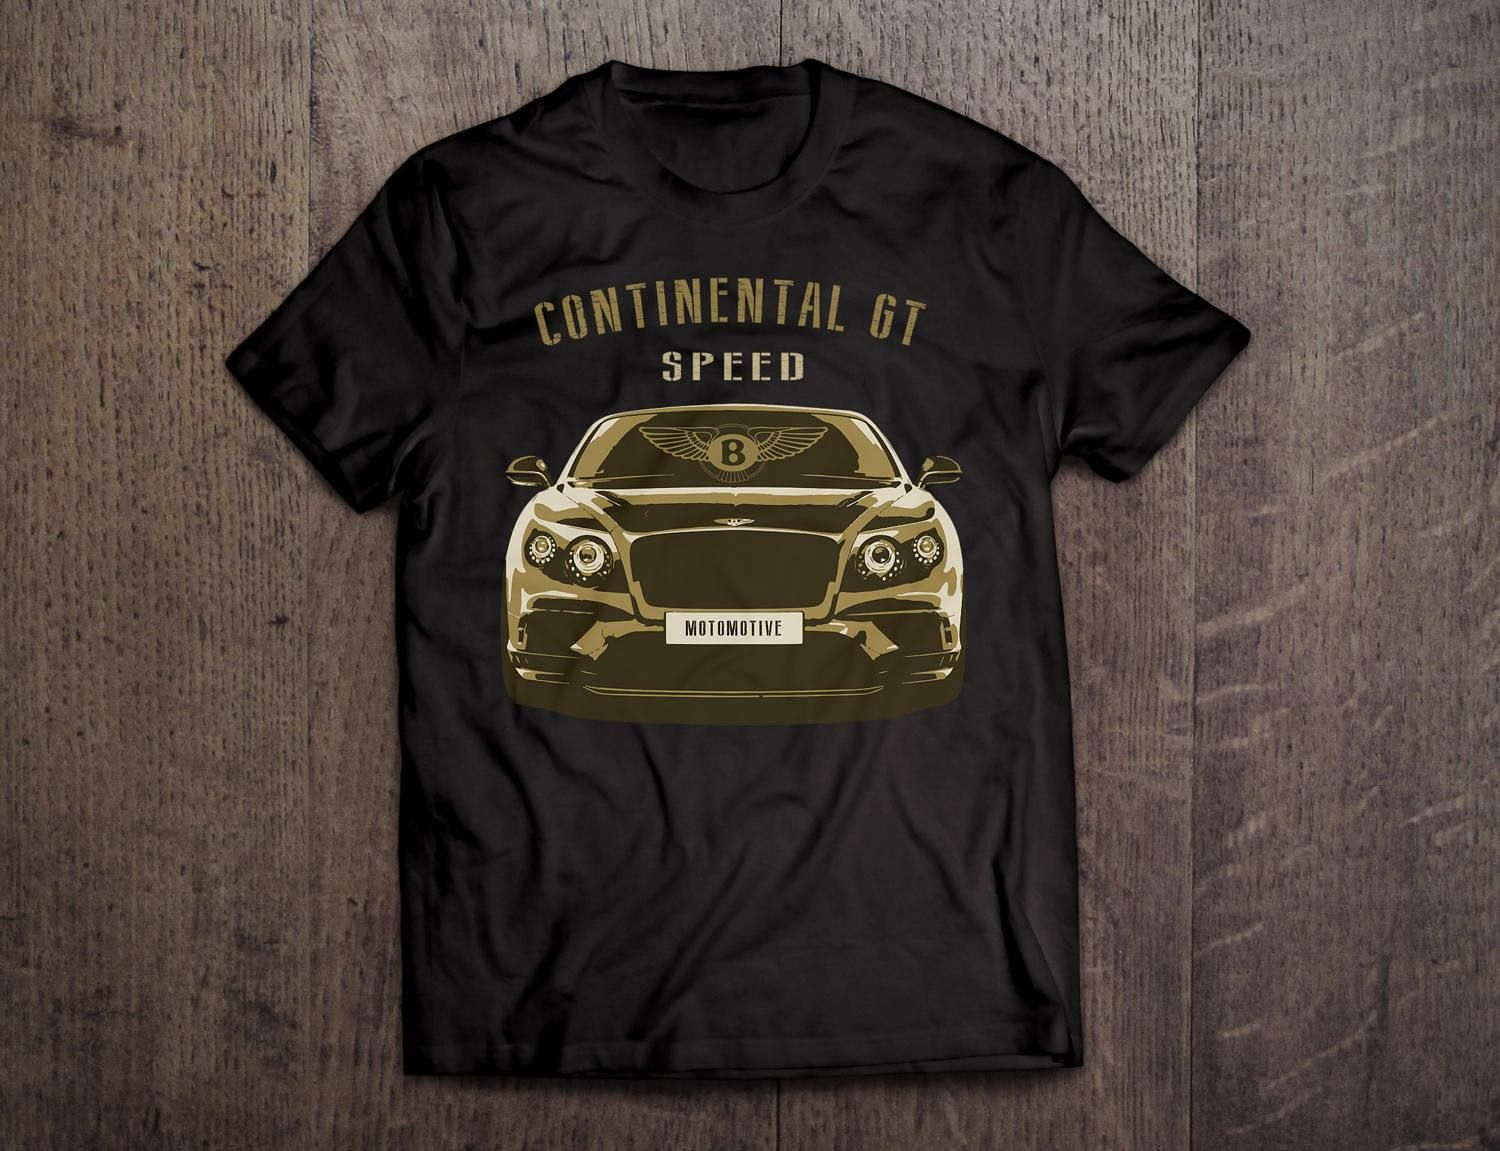 Bentley Continental Gt Bentley Shirts Black T Shirts Car T